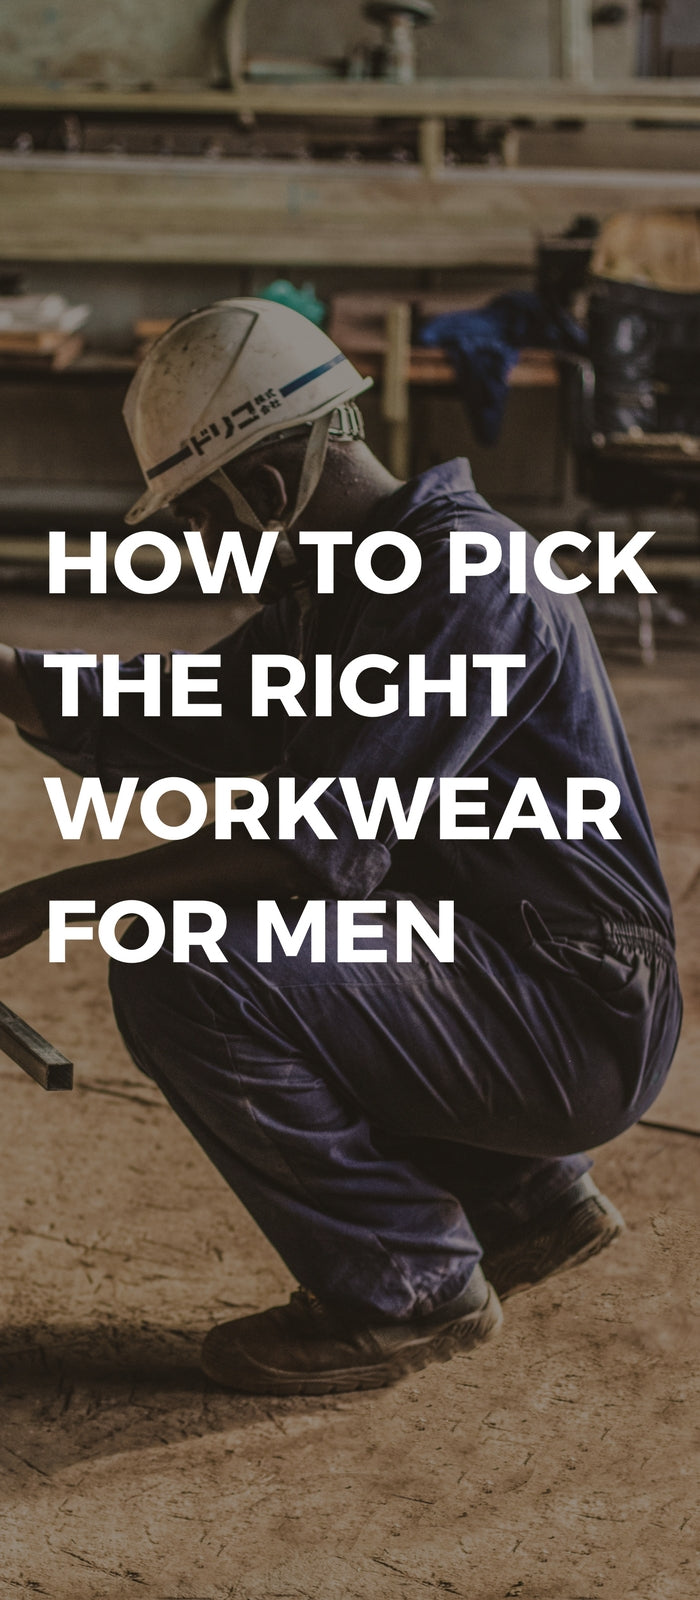 How To Pick The Right Workwear For Men